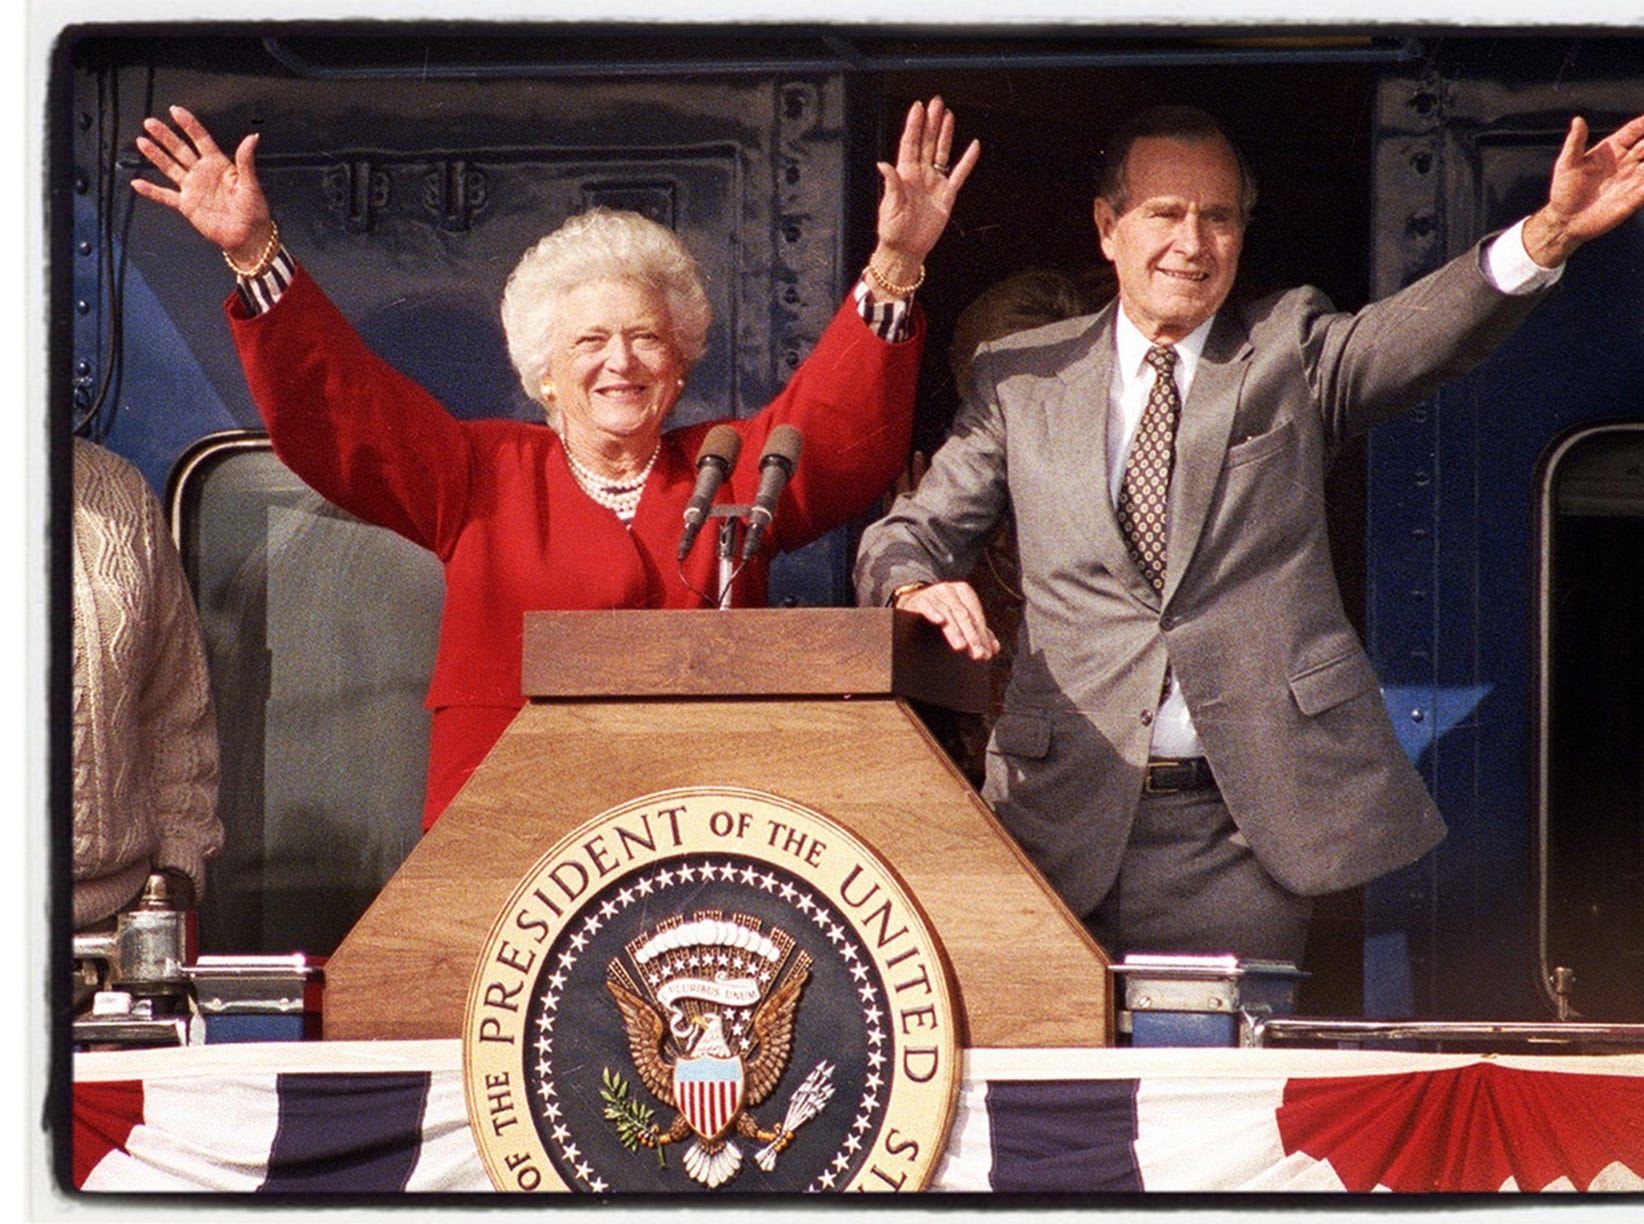 George H. W. Bush died in 2018. In 1992, running for reelection, he came to Plymouth by train. Next morning he and Barbara Bush departed from Livonia near Levan Road.